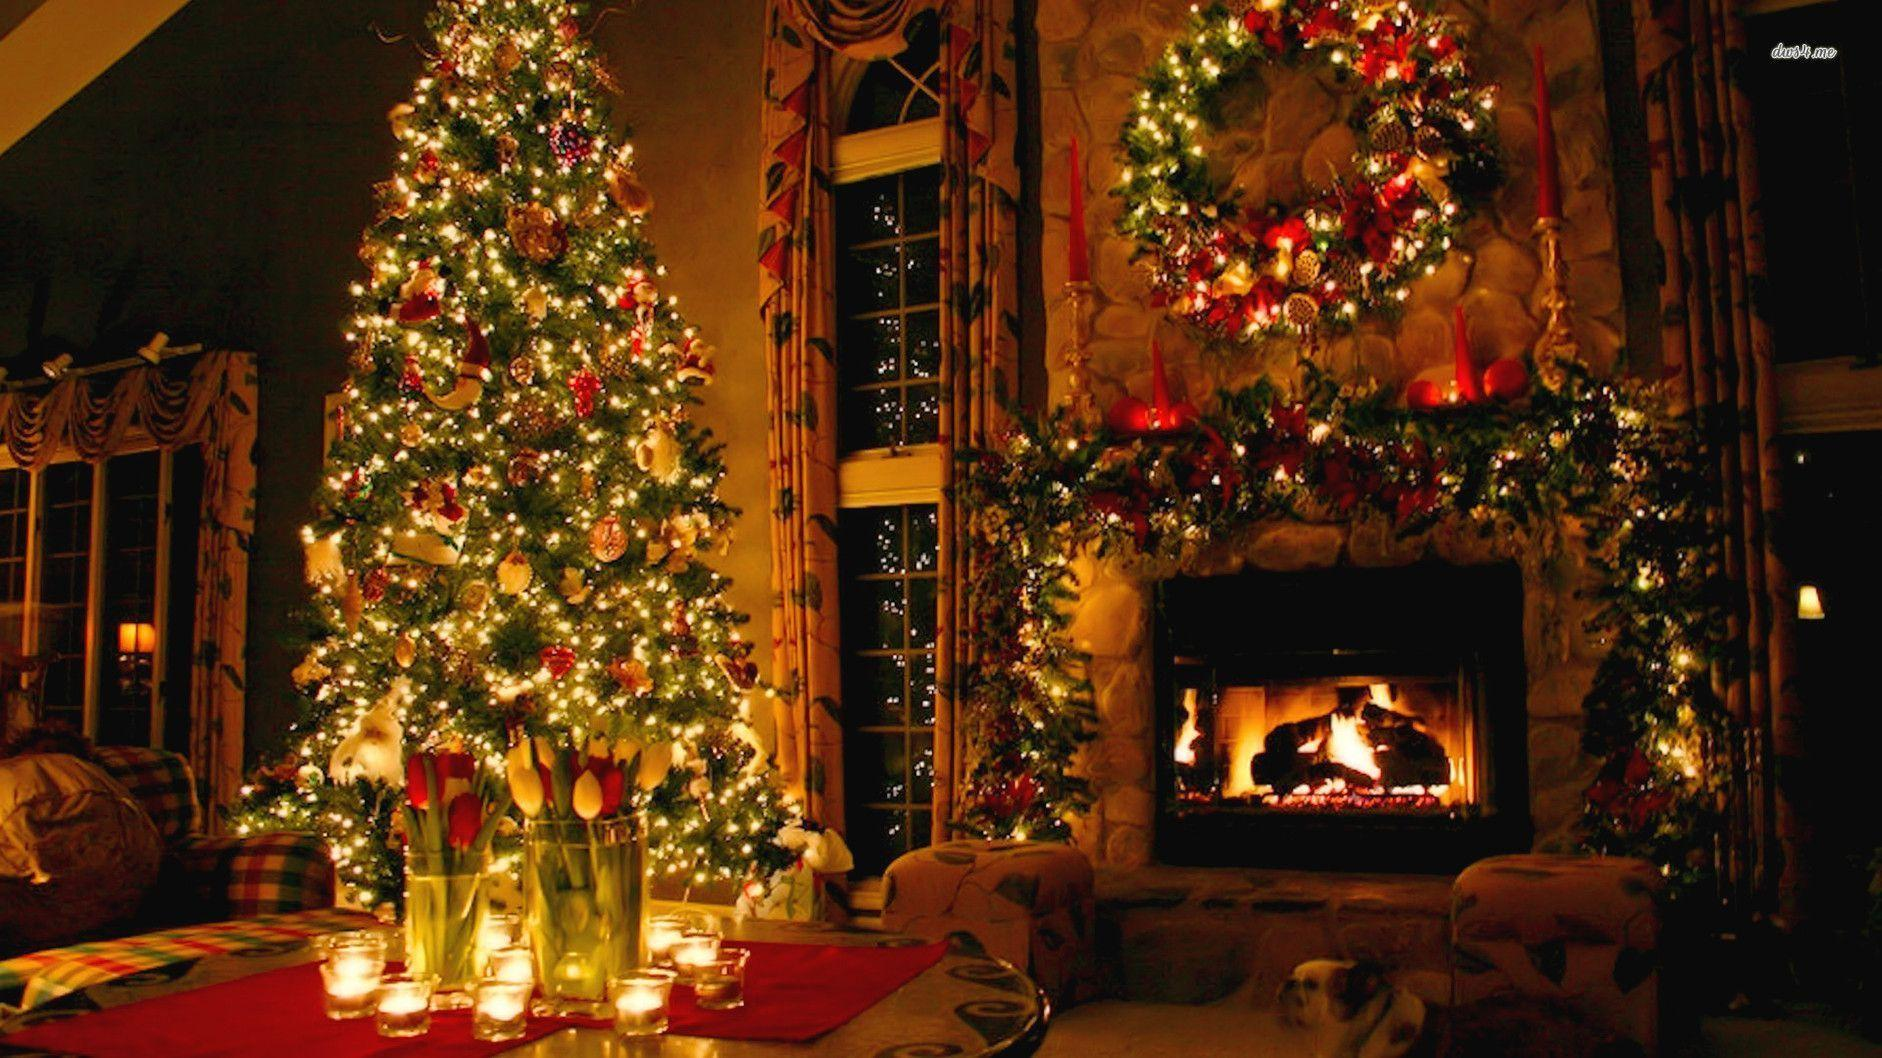 Christmas fireplace backgrounds wallpaper cave for Home decor xmas